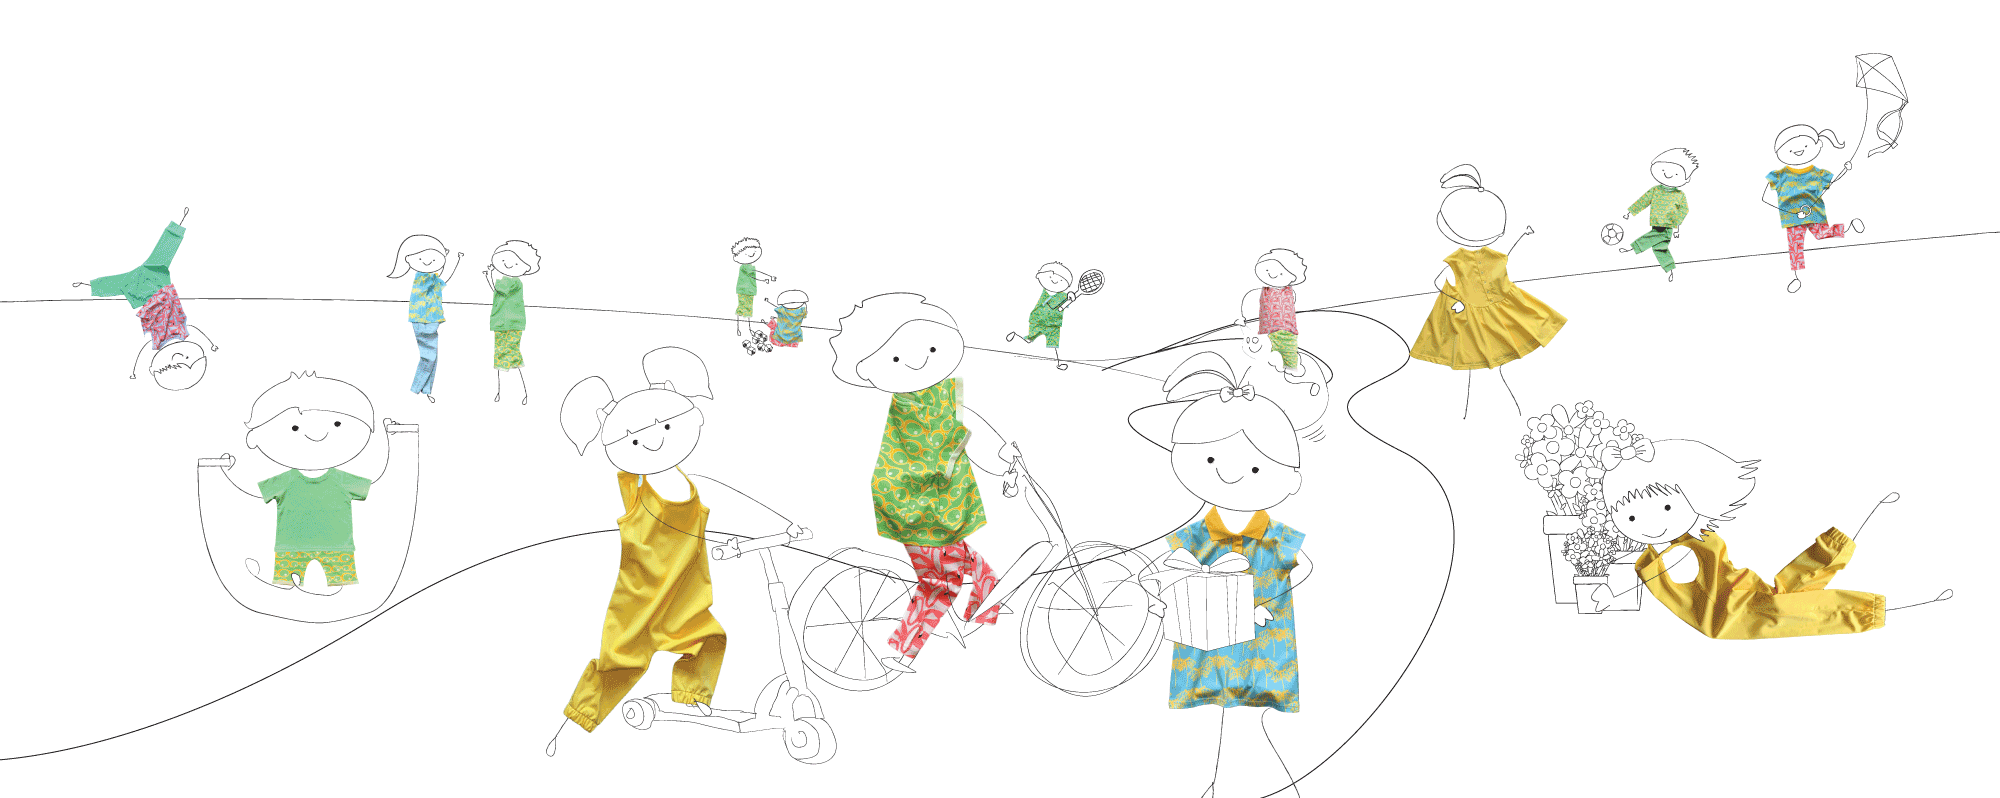 Children's clothing brand | Little Pegs | An illustrated image of childrens playing and having fun whilst wearing the let them play collection for Little Pegs